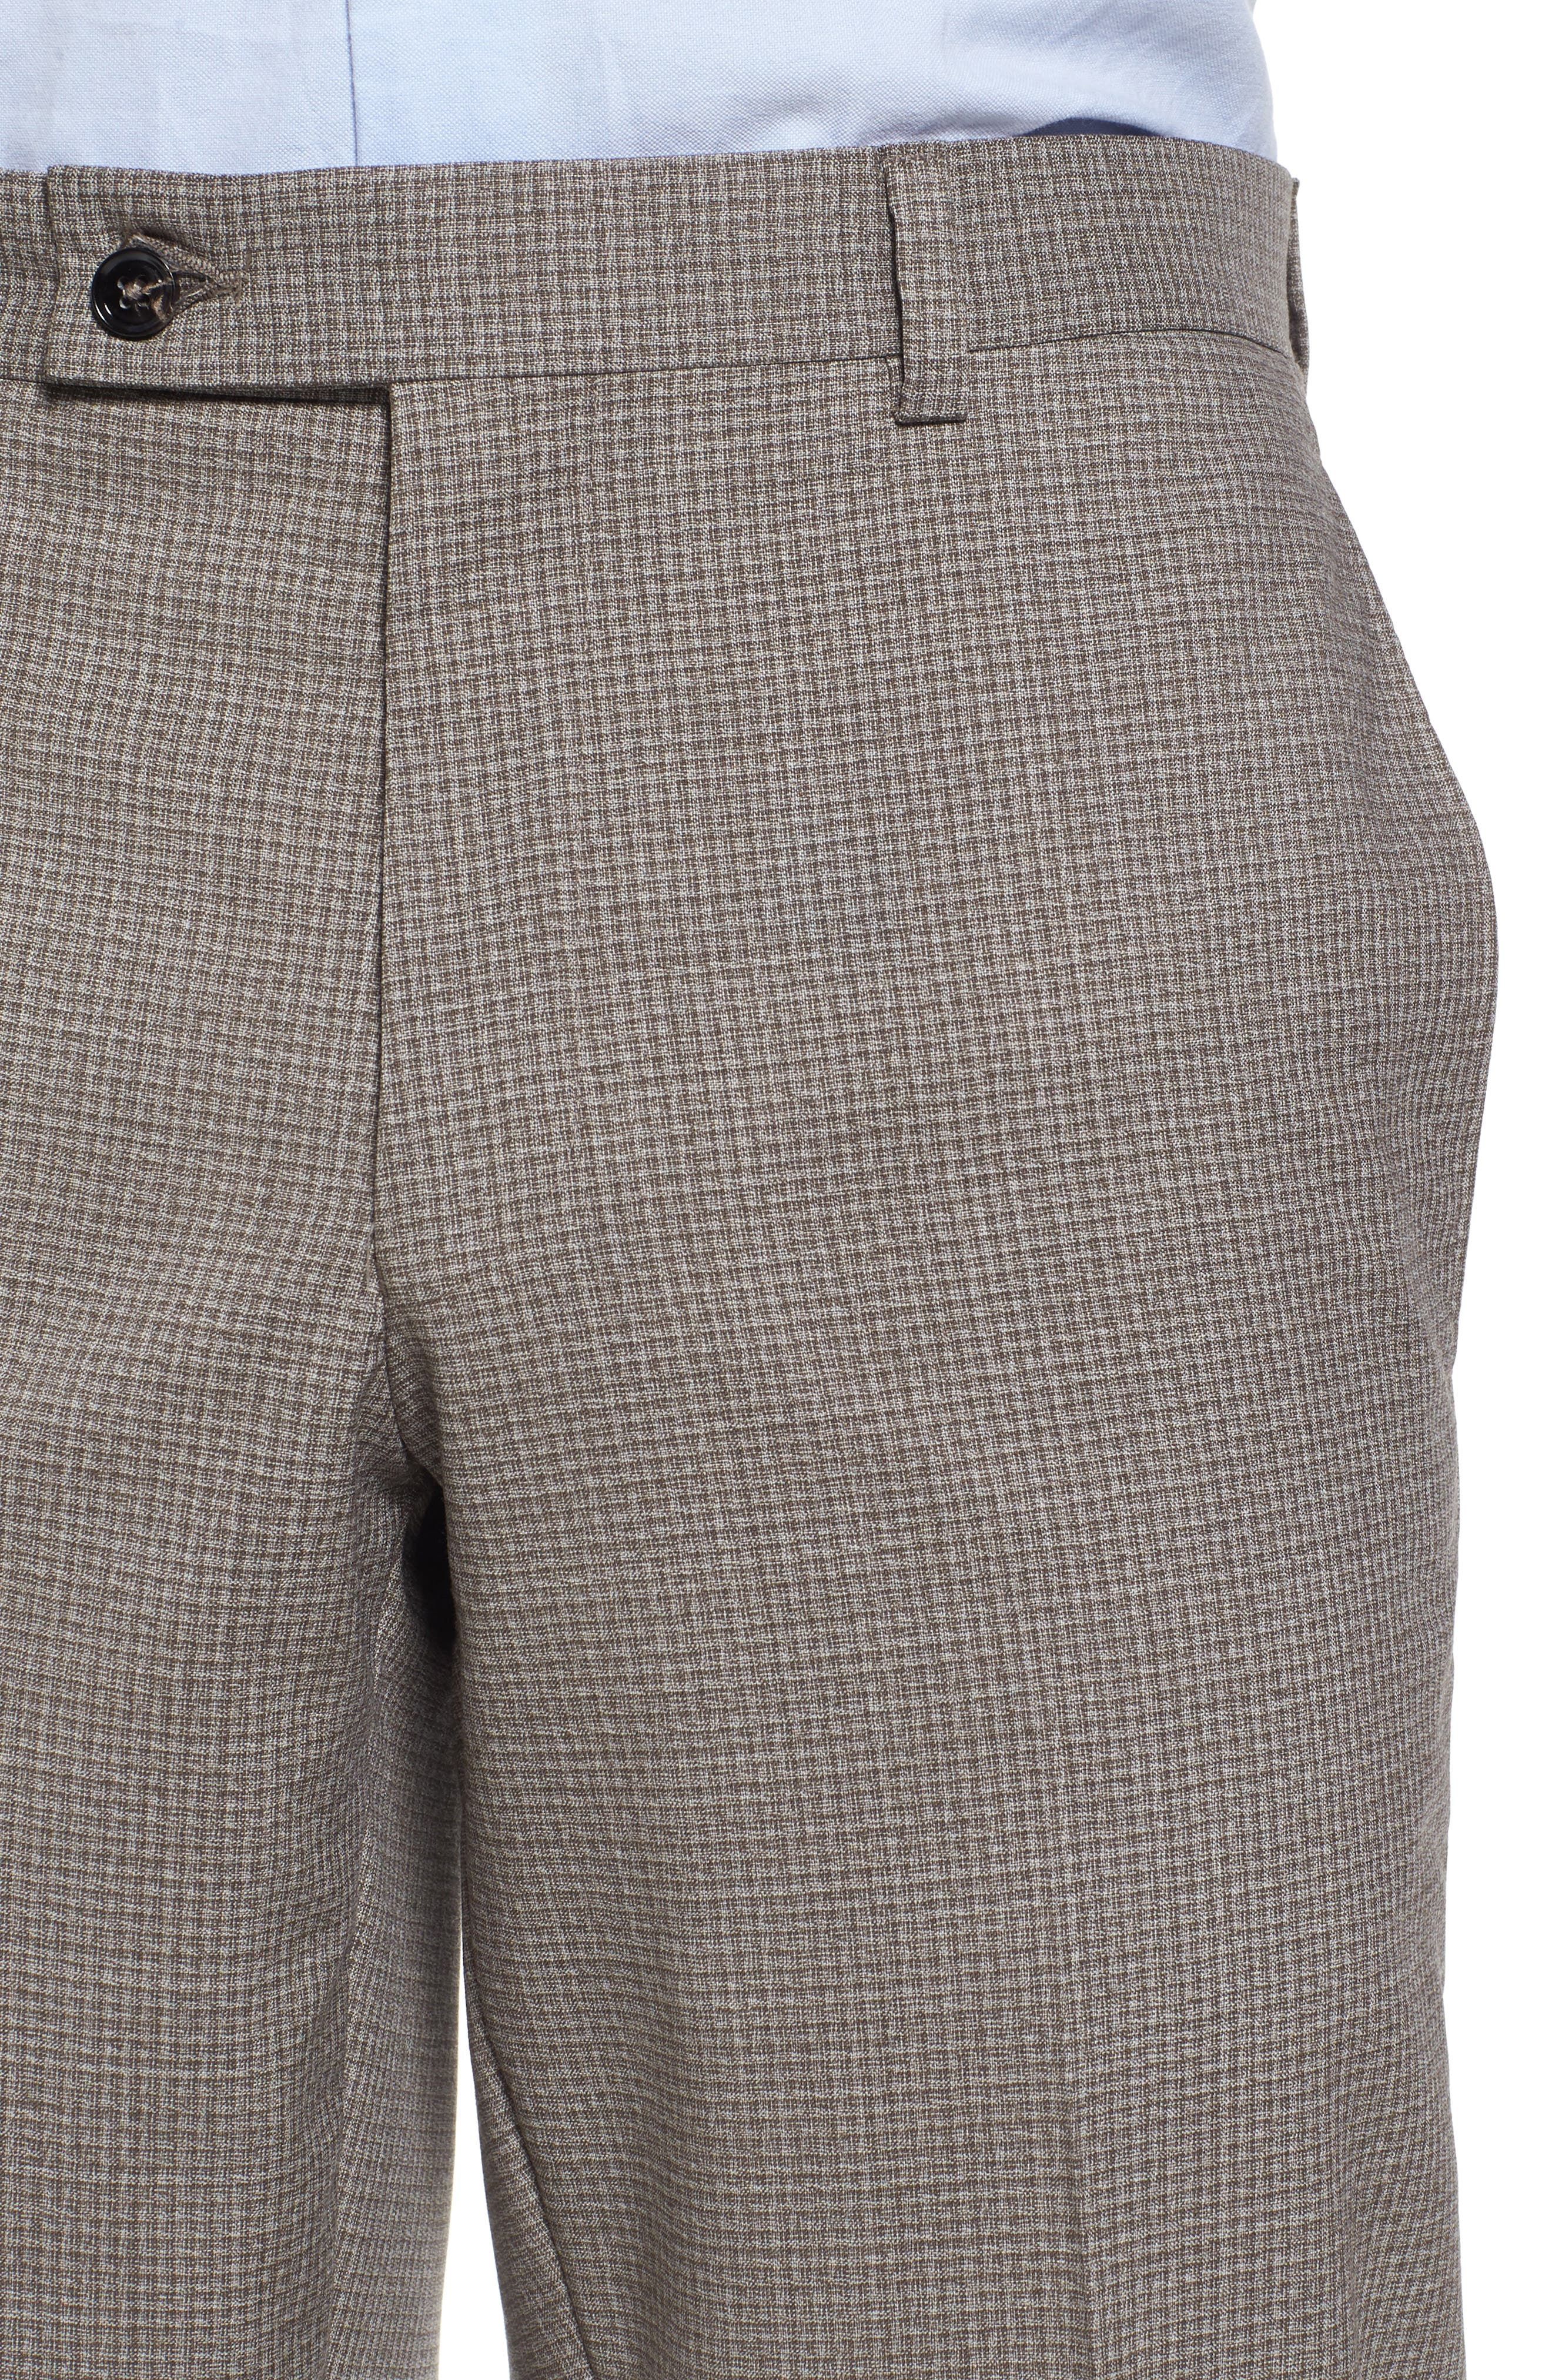 Flat Front Check Wool Trousers,                             Alternate thumbnail 5, color,                             250